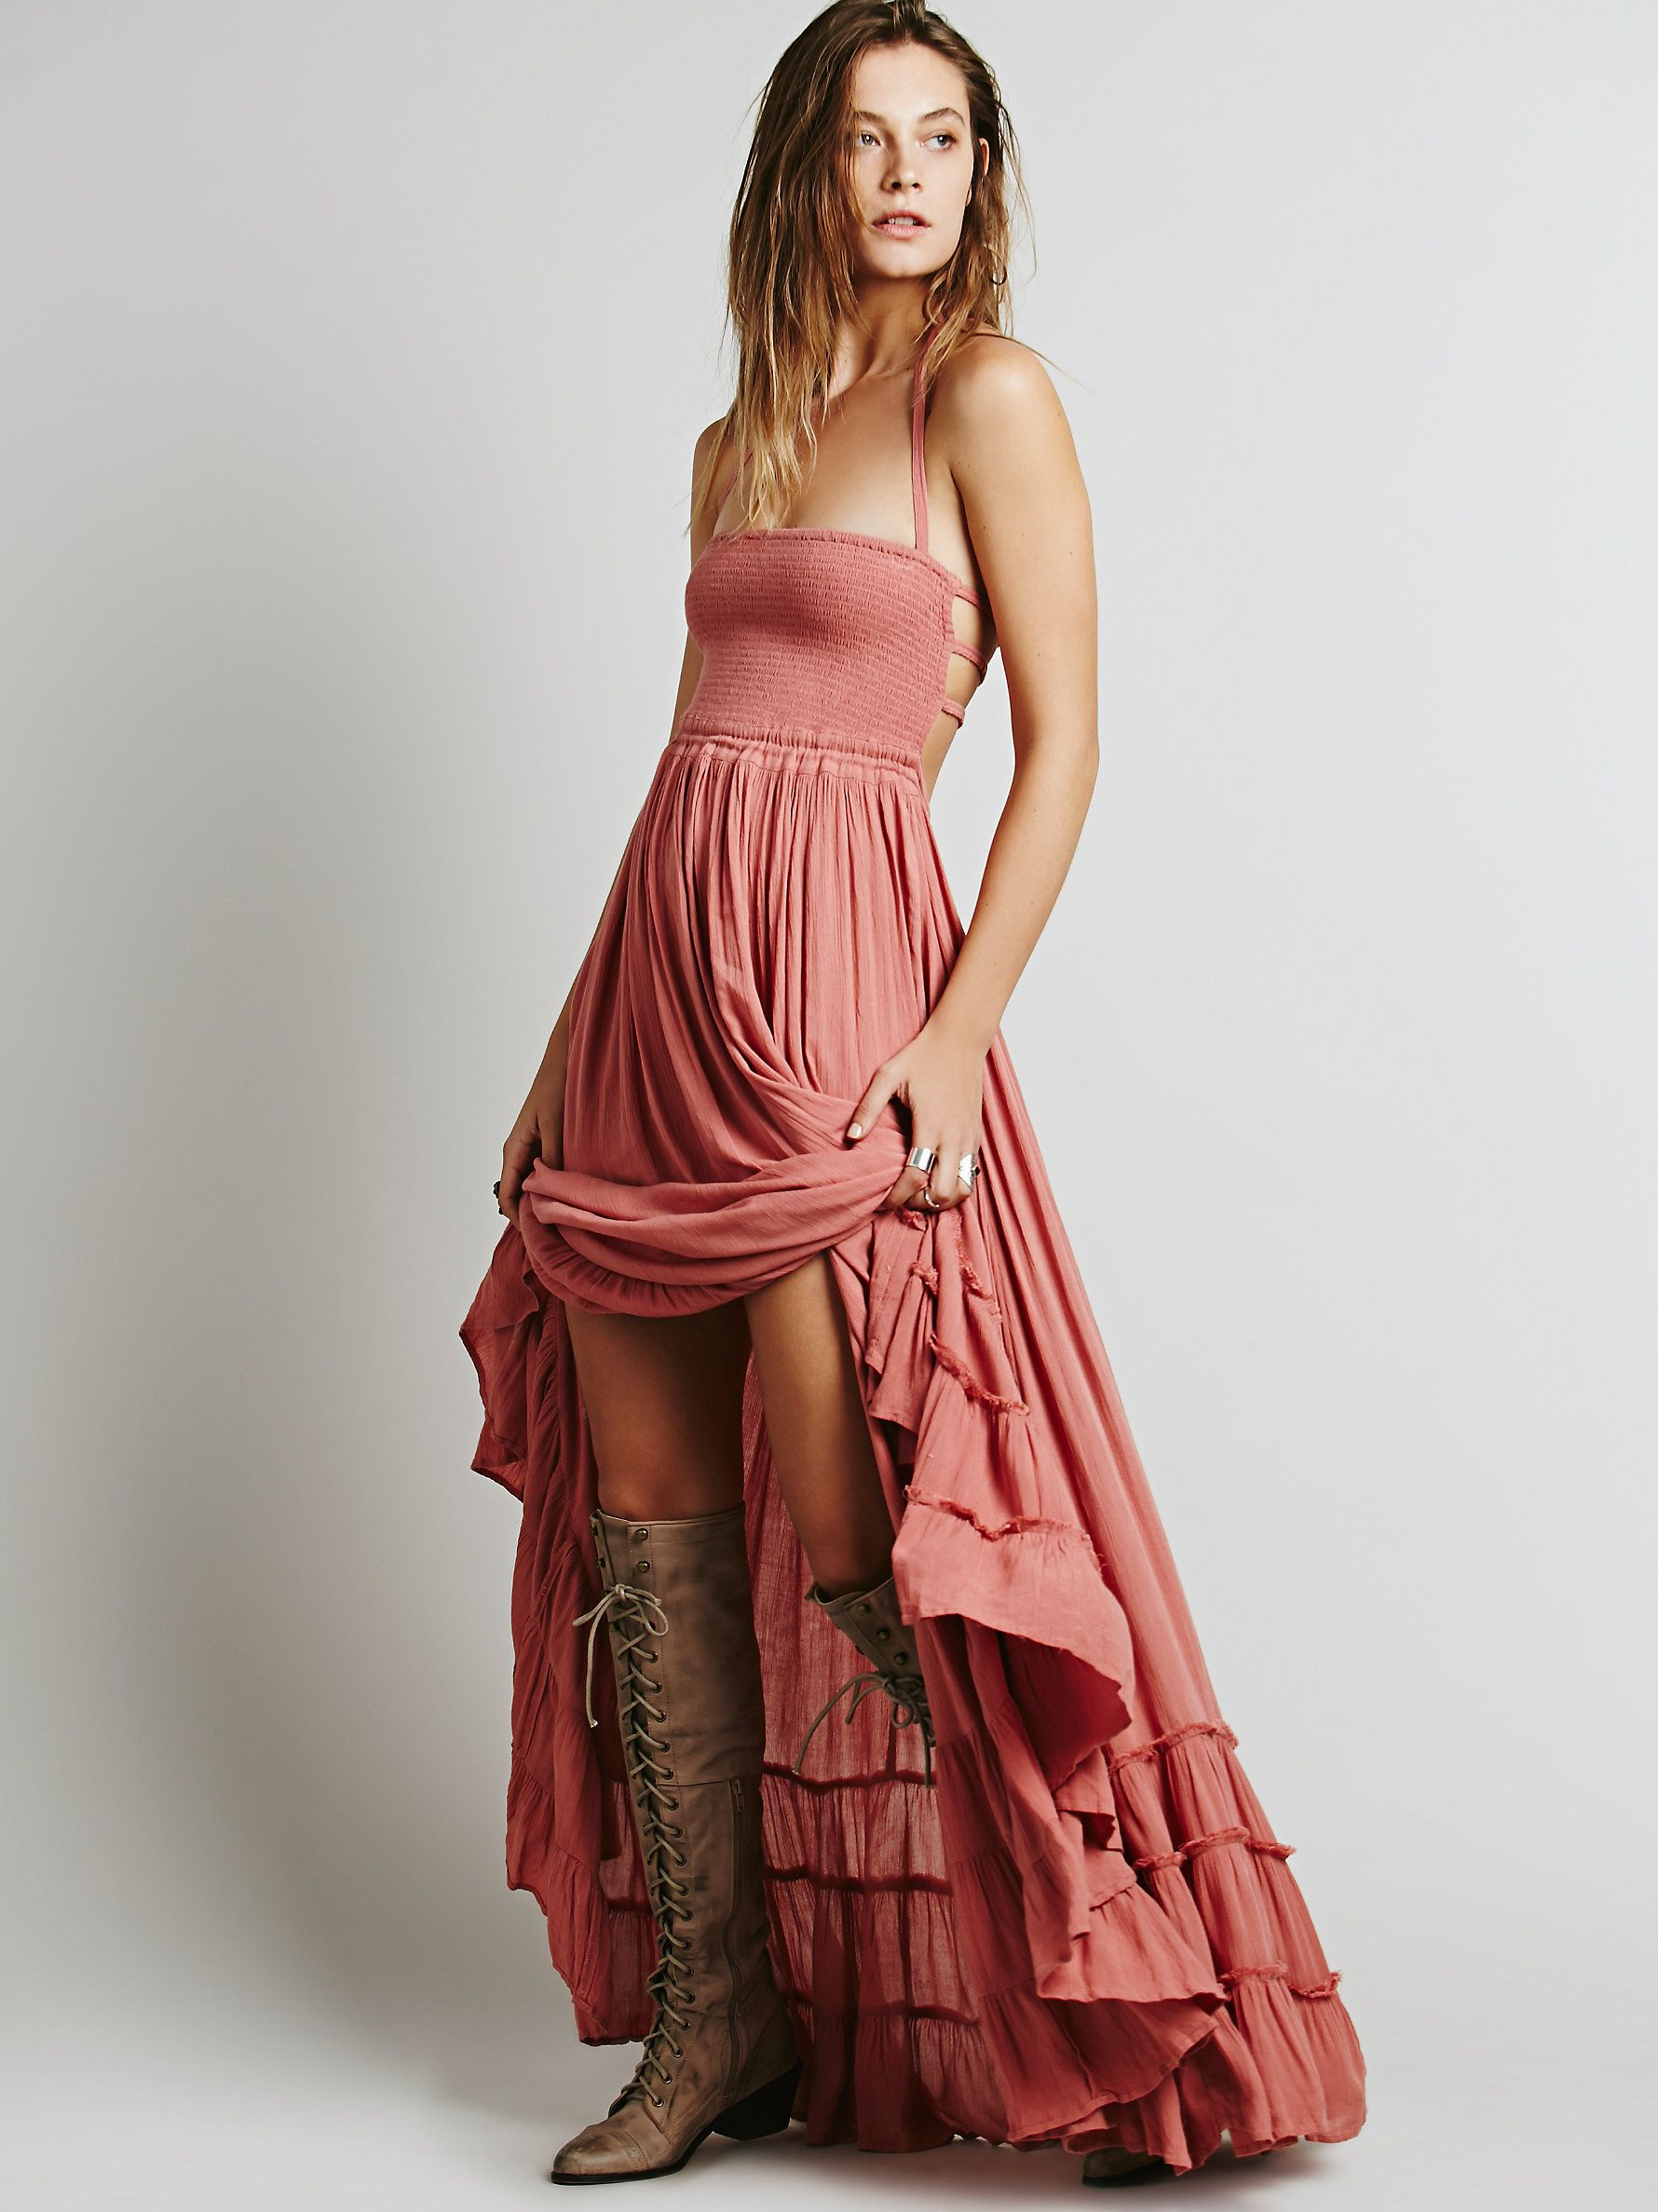 d2a8fd3b95 Extratropical Dress (shown in Rose Wood) | 100% Rayon | Design: Free  People, circa Spring 2016 | ($118.00)